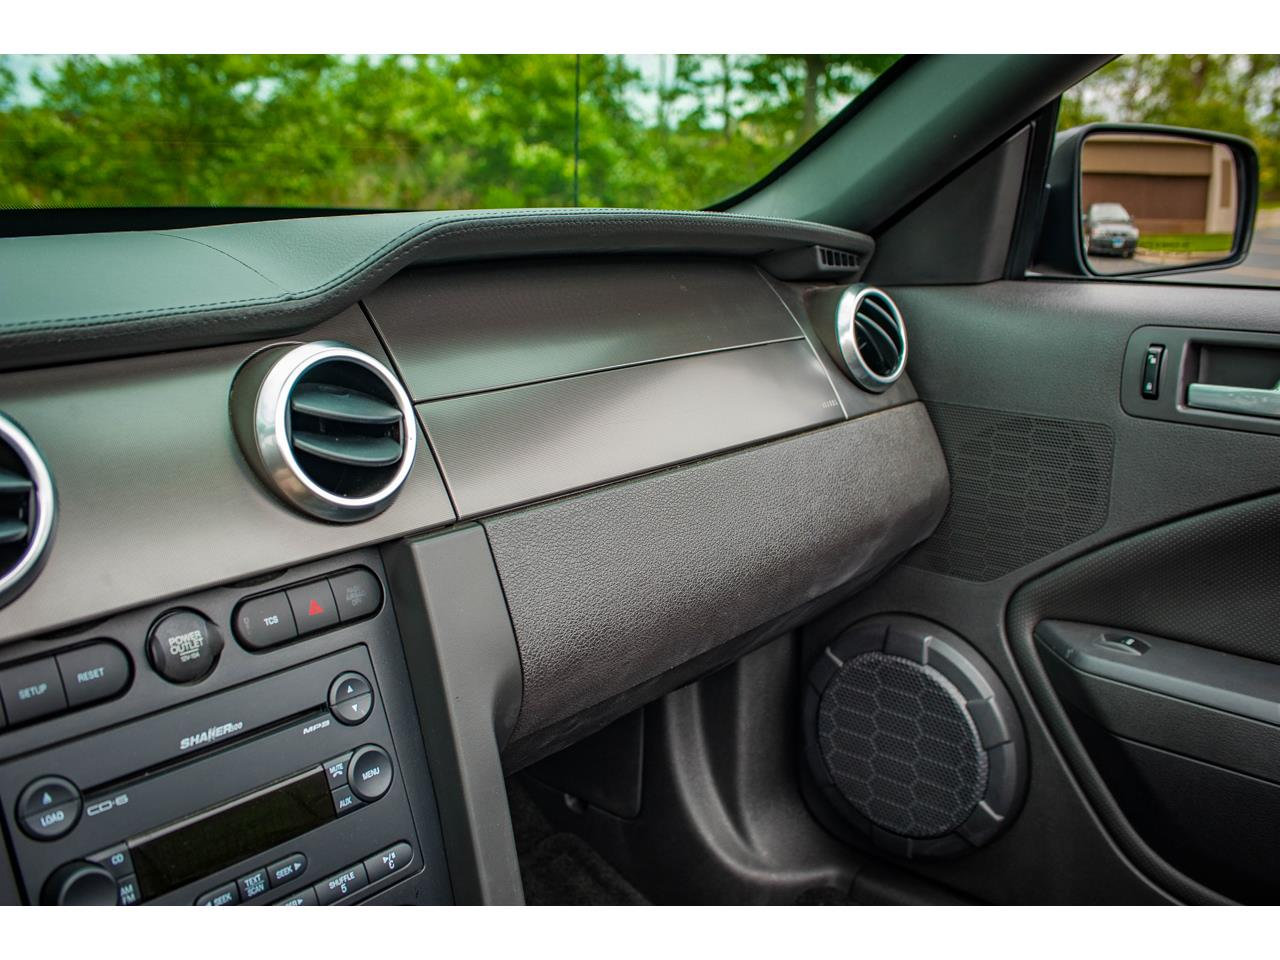 Large Picture of '07 Mustang located in O'Fallon Illinois - $40,500.00 Offered by Gateway Classic Cars - St. Louis - QB98